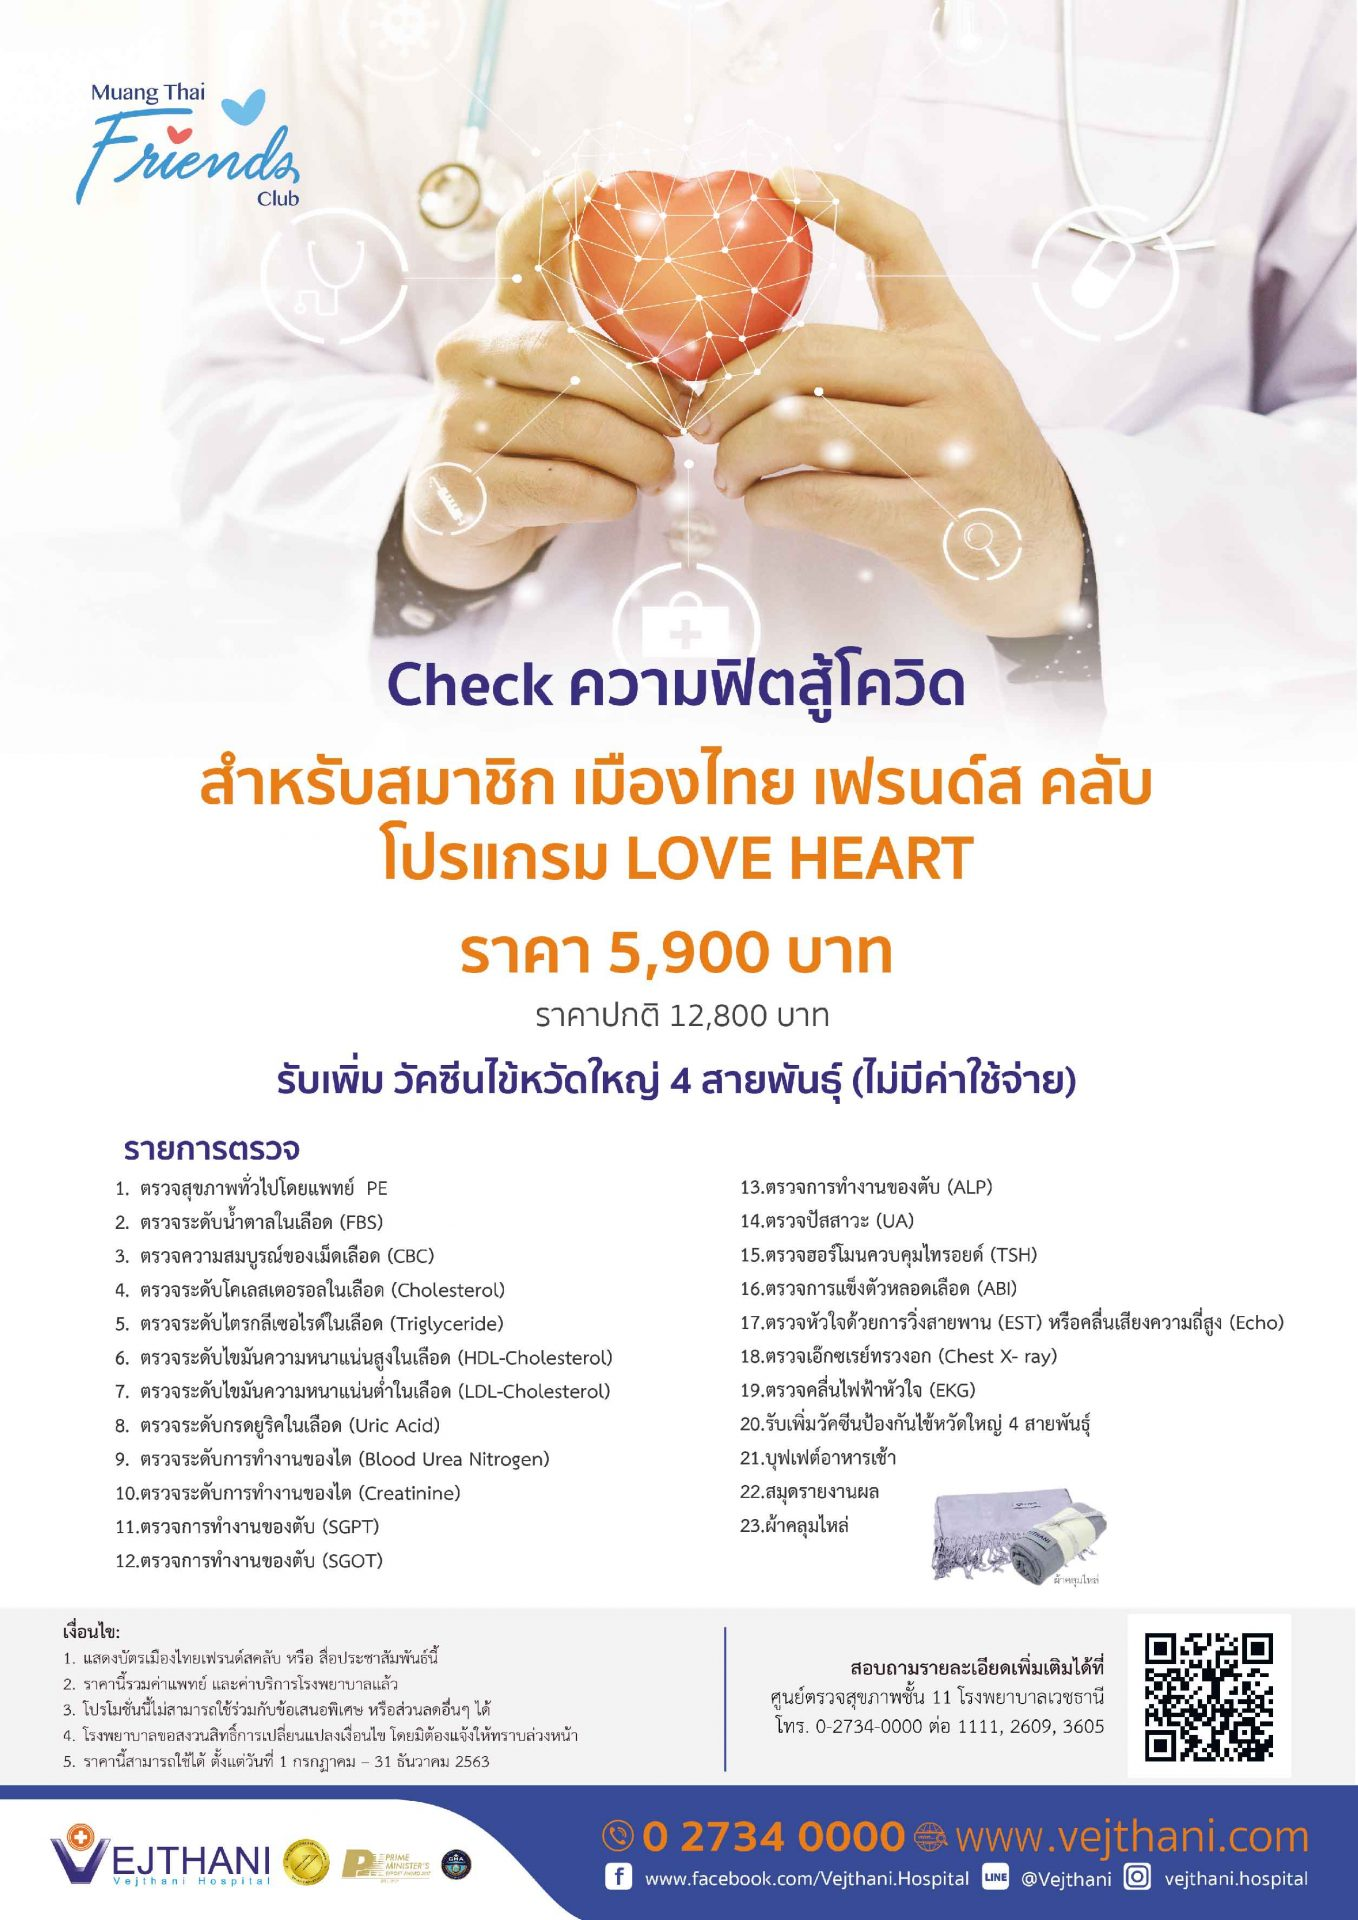 https://www.vejthani.com/wp-content/uploads/2020/07/MAS-meuang-thai-LoveHeart-A4-scaled.jpg